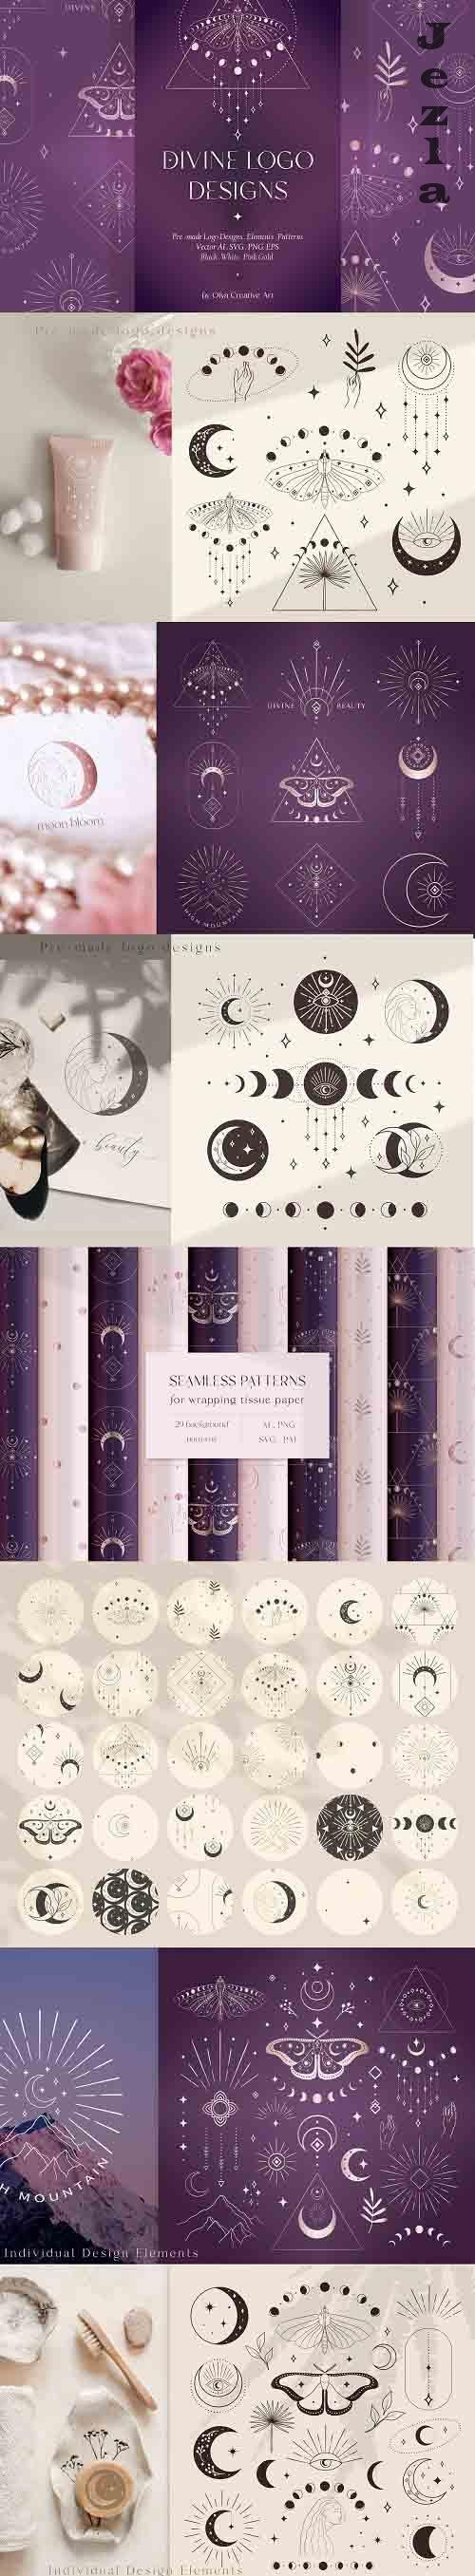 Divine Beauty Logo Designs, Elements and Patterns Collection - 6131969